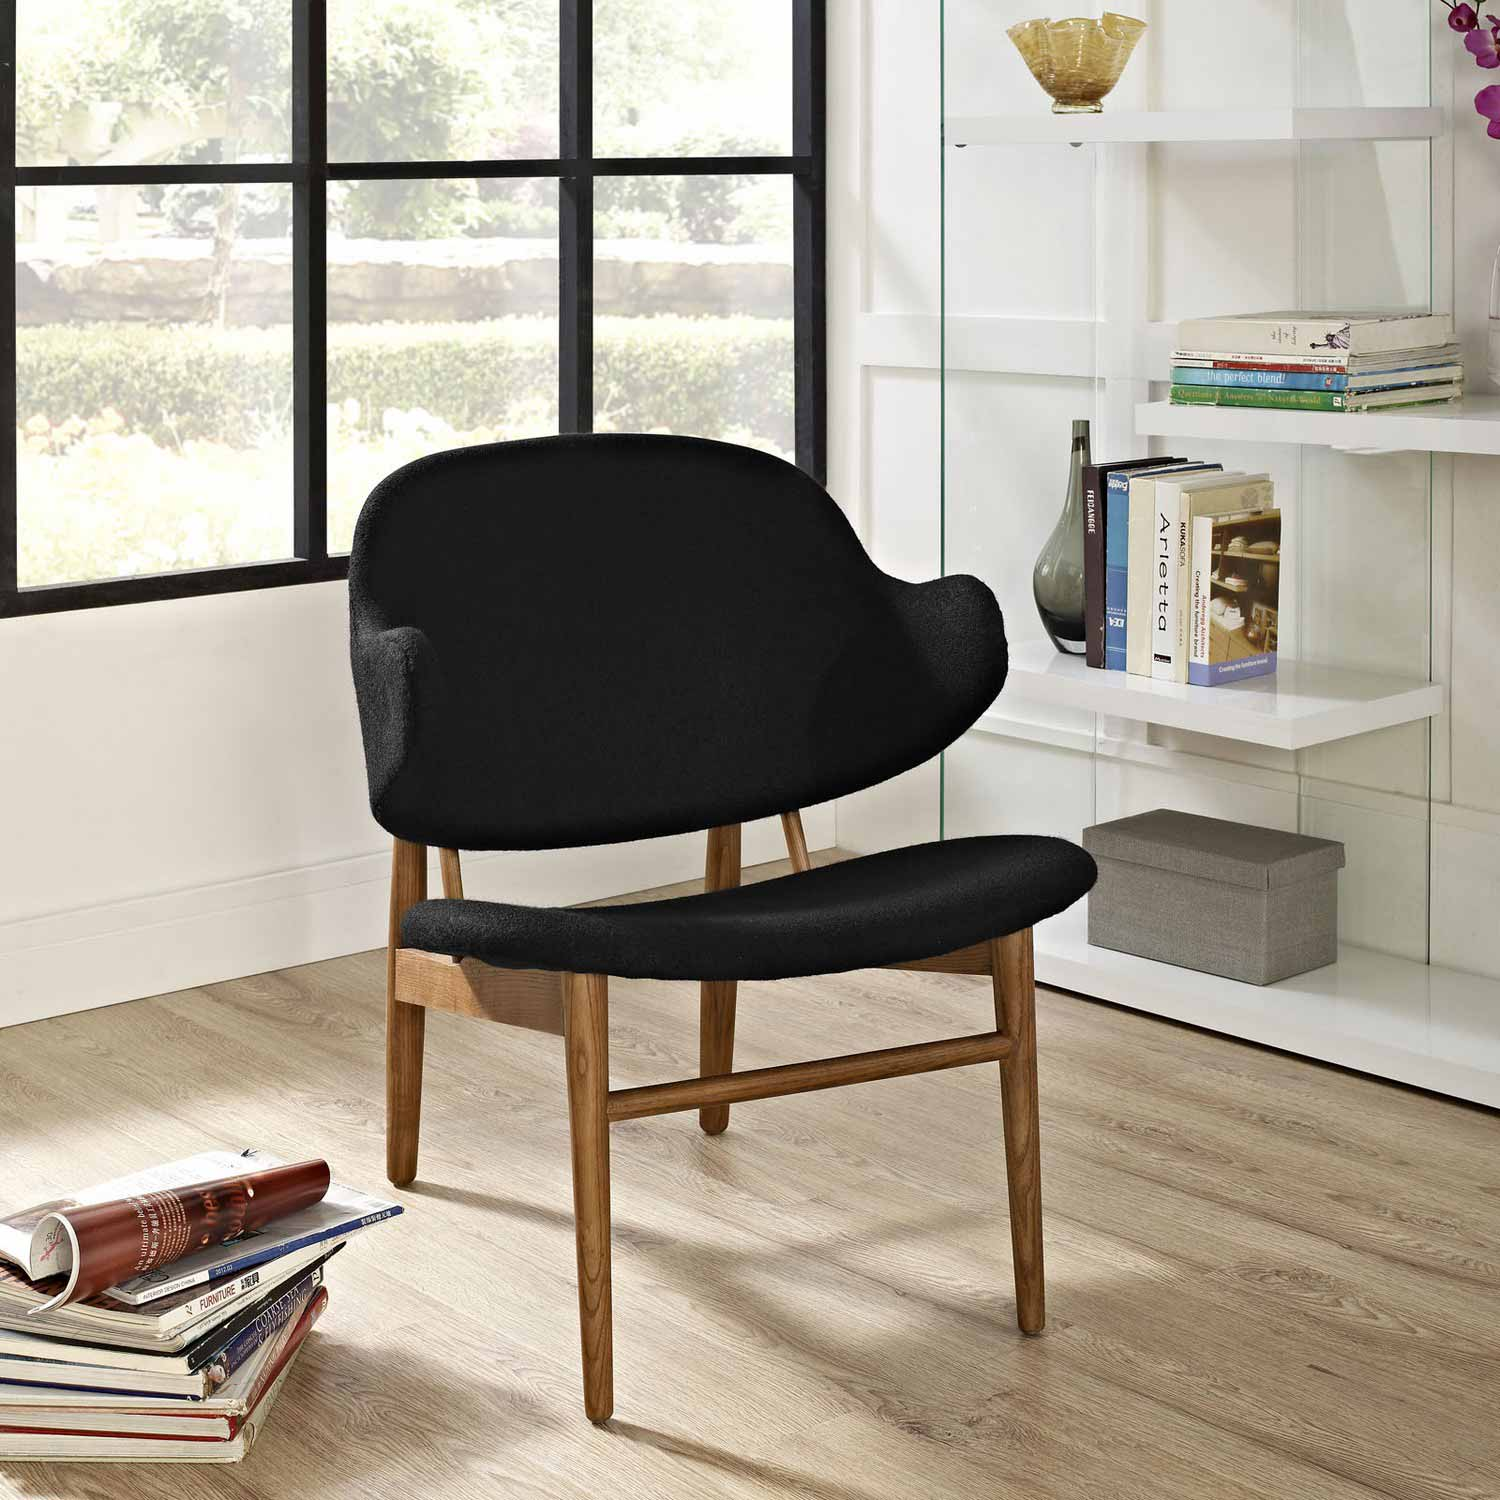 Modway Suffuse Lounge Chair - Maple Black